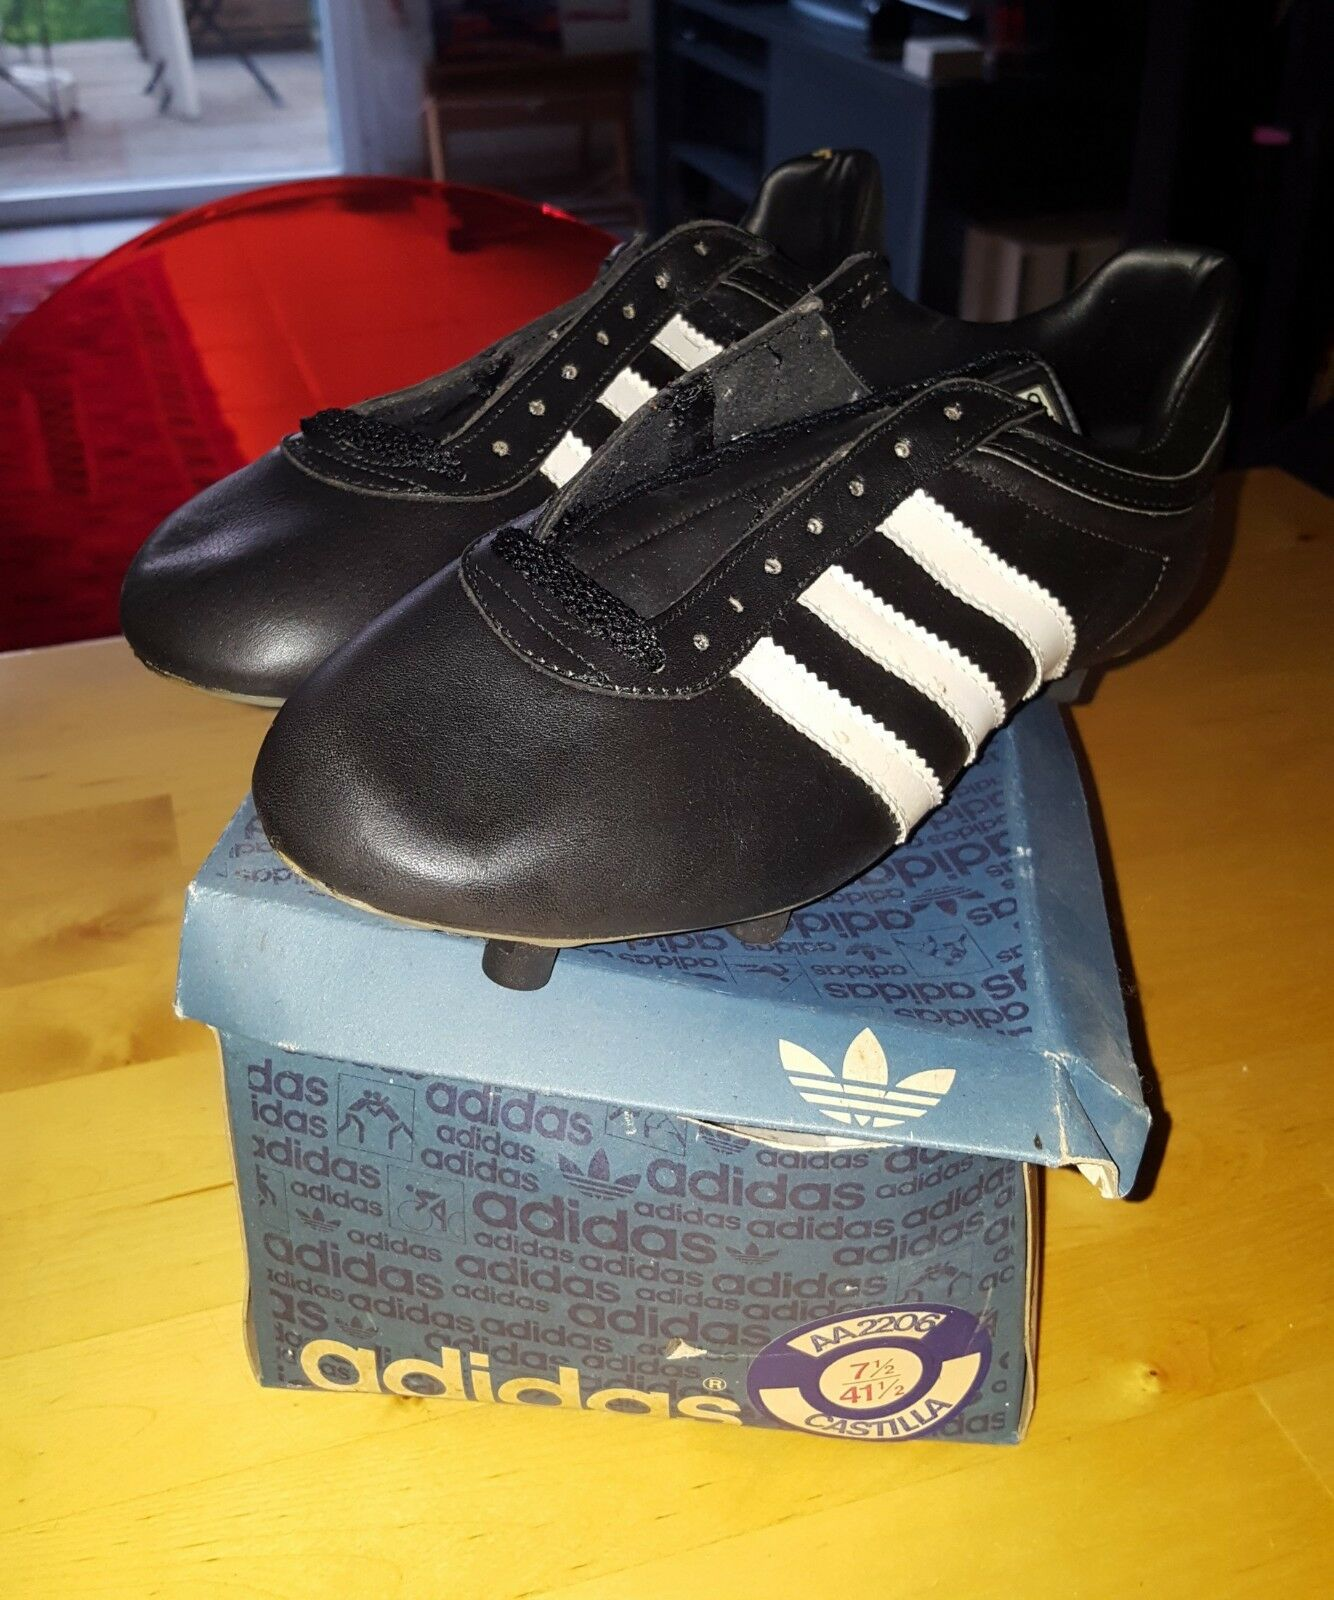 VINTAGE ADIDAS CASTILLA FOOTBALL Stiefel NEW, MADE IN FRANCE UK7,5 41 1 2